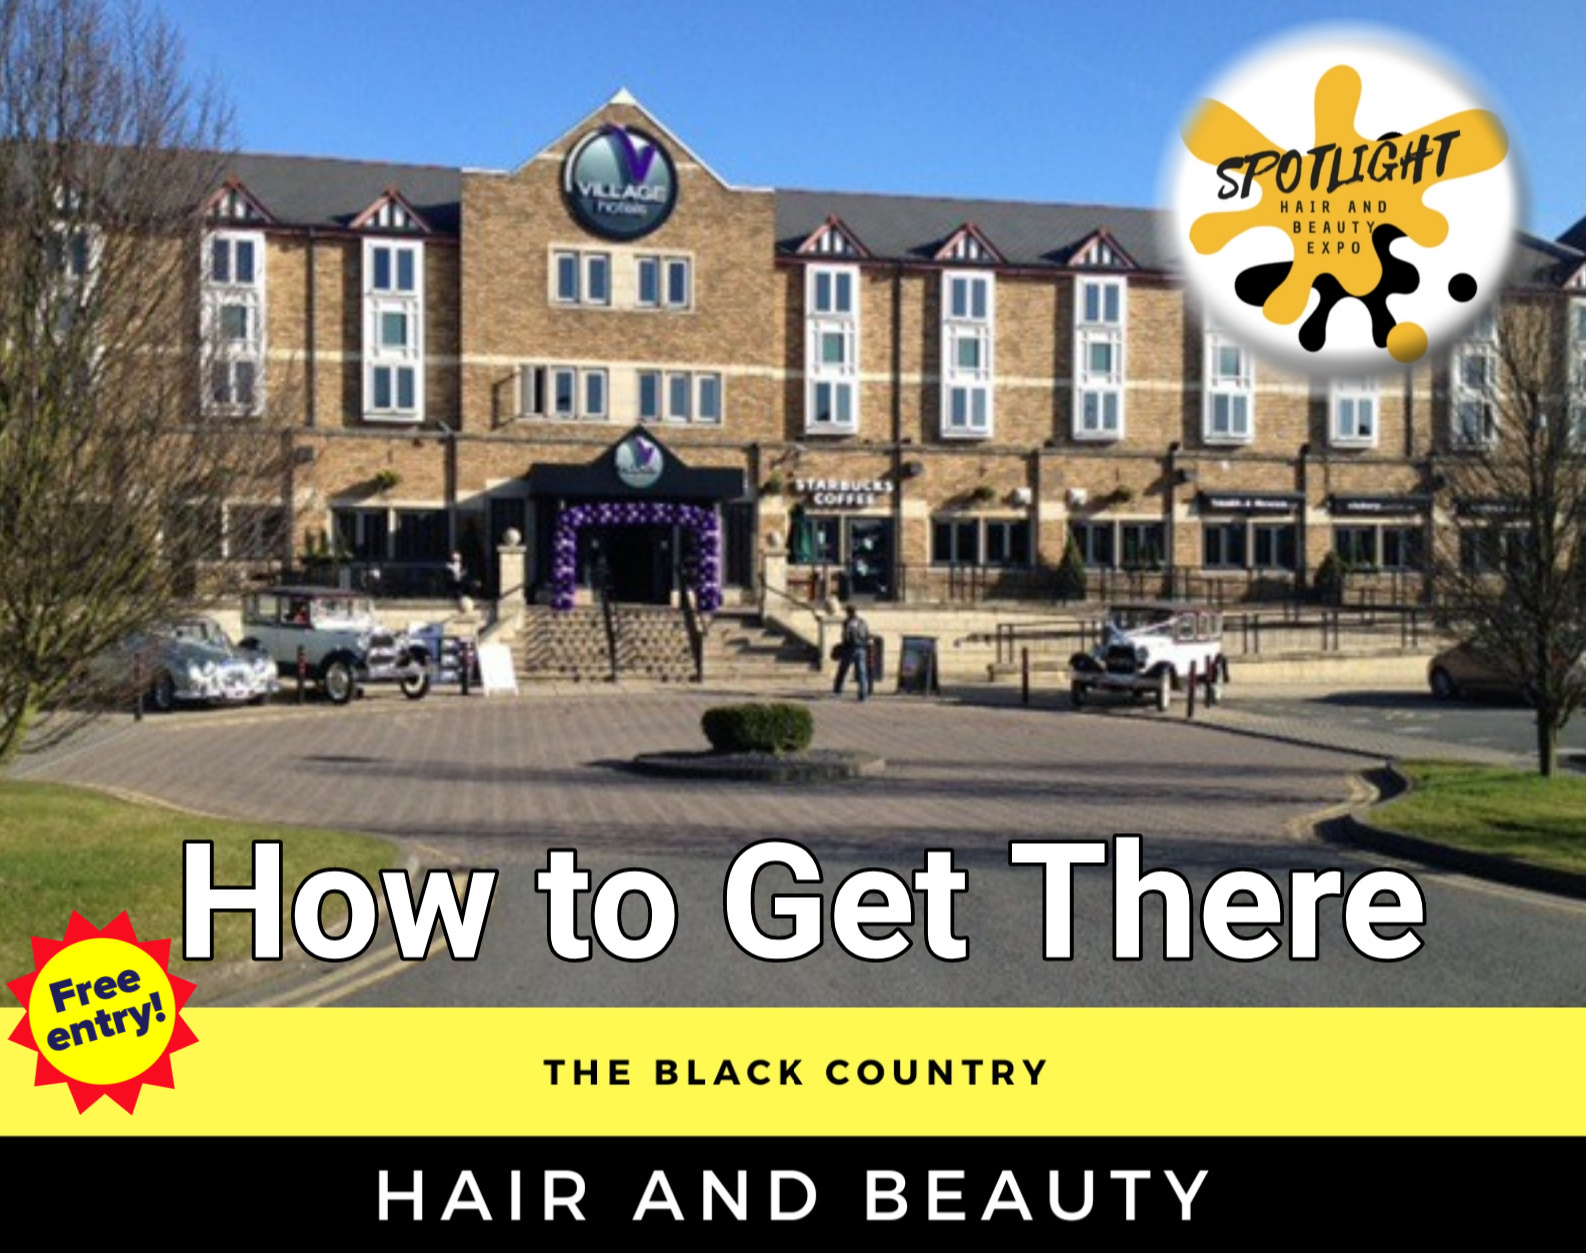 How to get to the spotlightexpo show at the village hotel